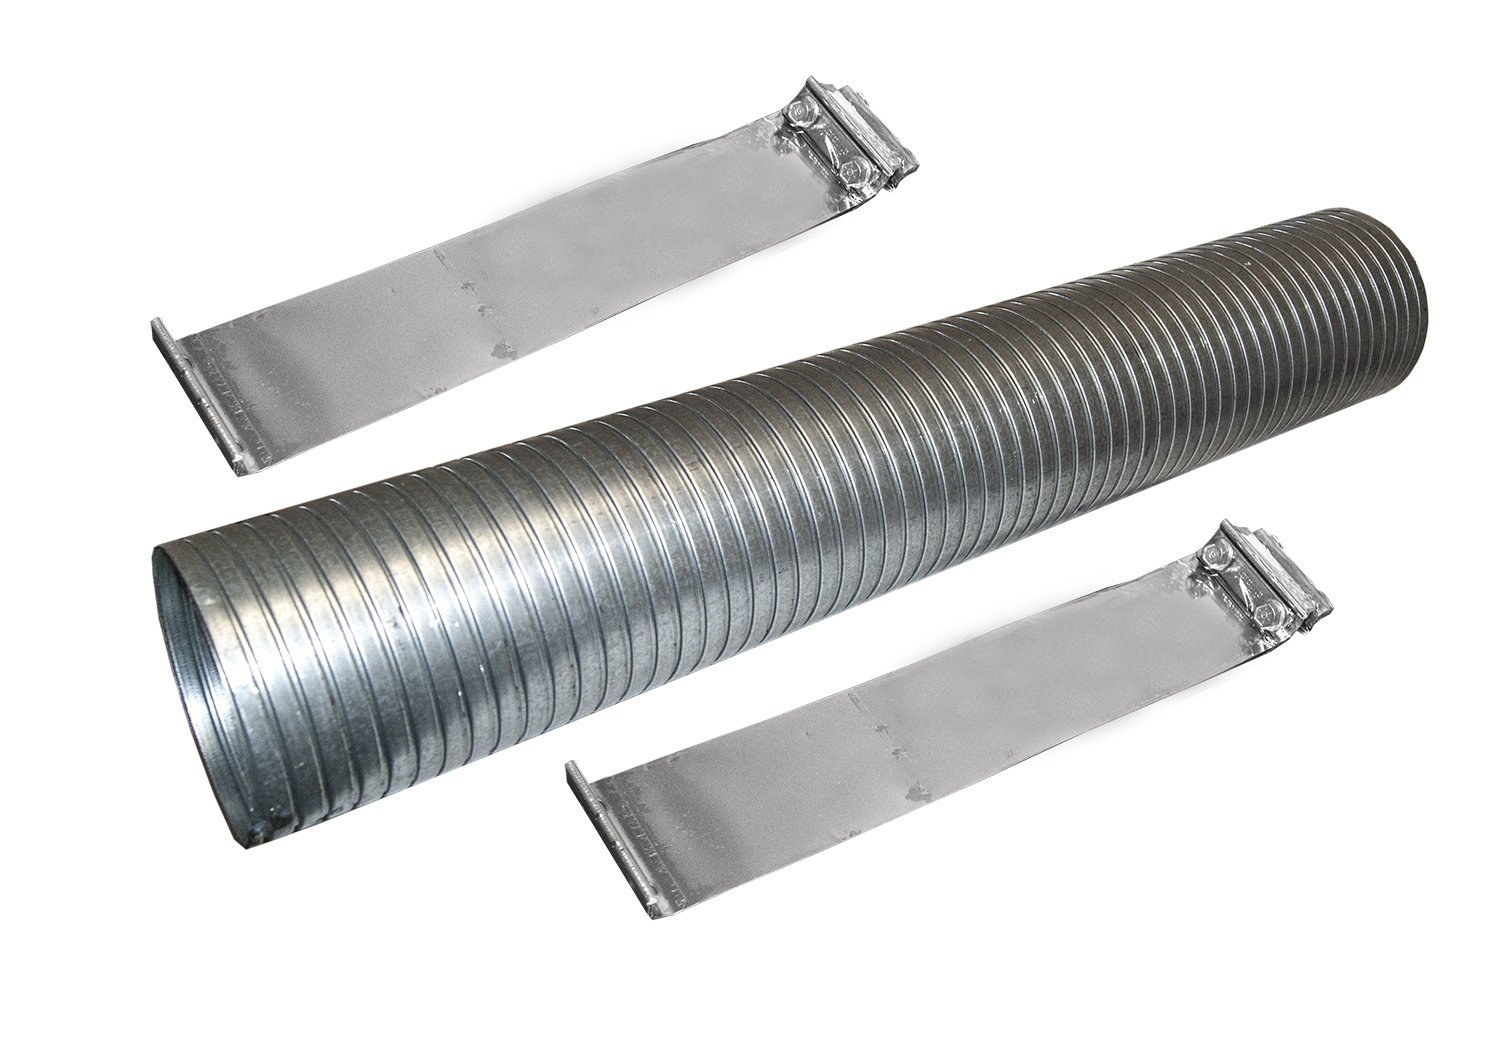 48' Galvanized Flexible Exhaust Tubing 5' Diameter Flex Pipe with 2 Band Clamps Heavy Duty Manufacturing